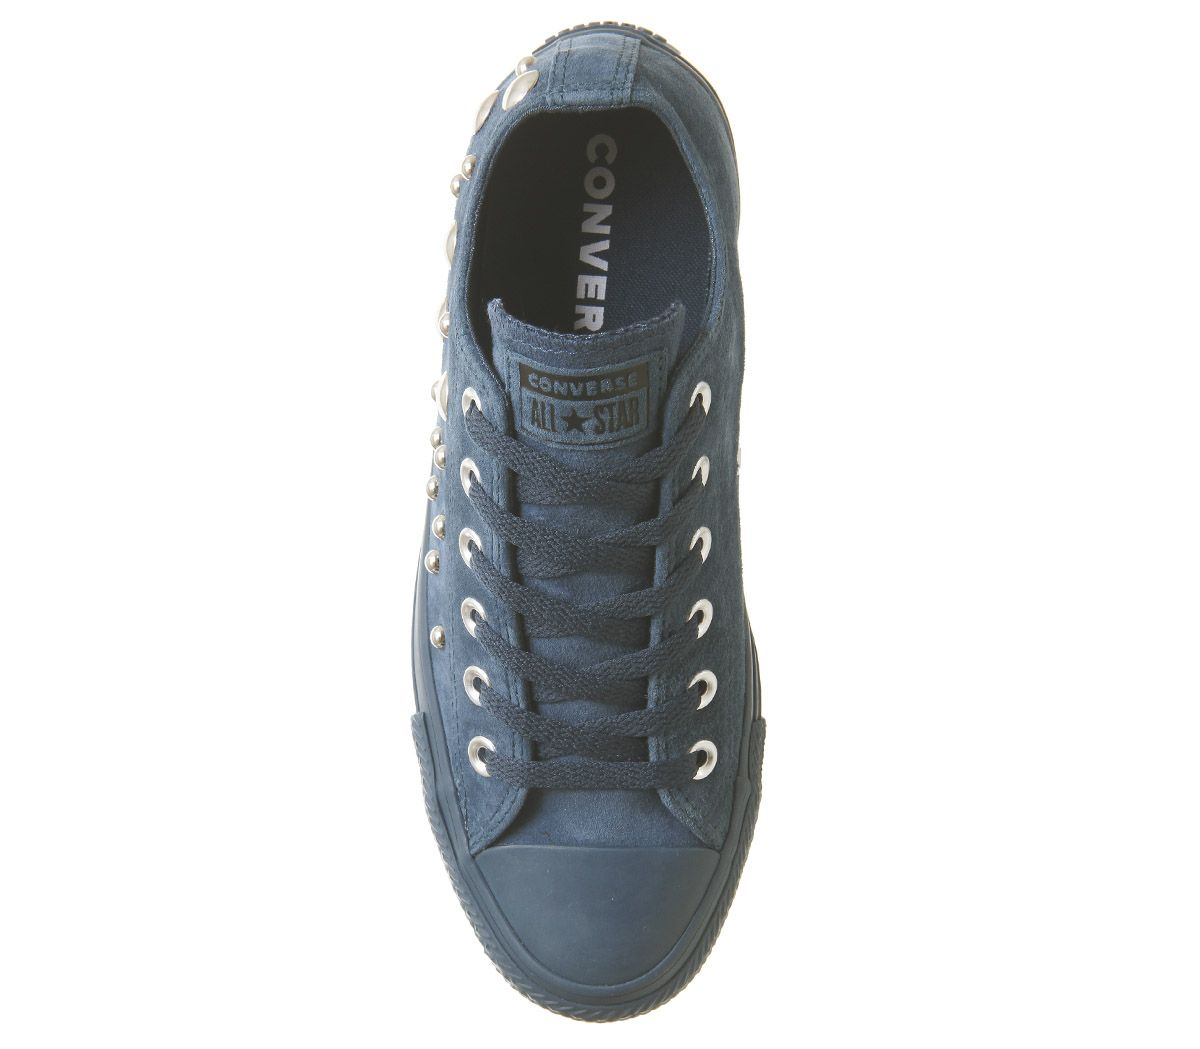 c6565eab179 Womens Converse All Star Low Leather Trainers Blue Fir Multi Studio ...